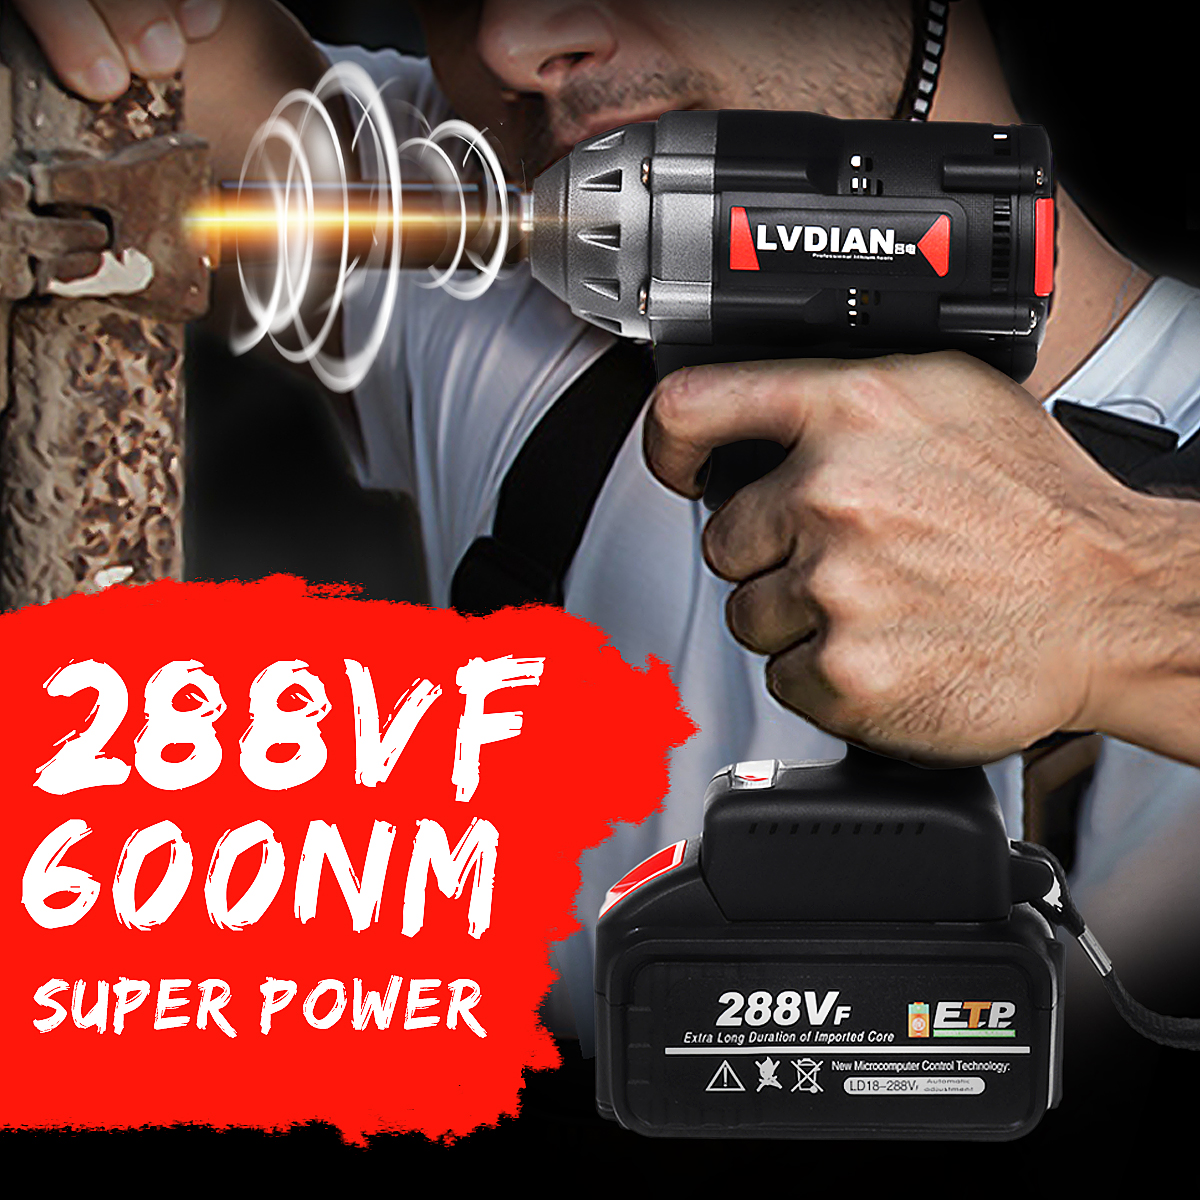 288VF 600N.M Max Brushless Impact Wrench Li-ion Battery Brushless Motor Electric Wrench Power Tool With Charger Sleeve